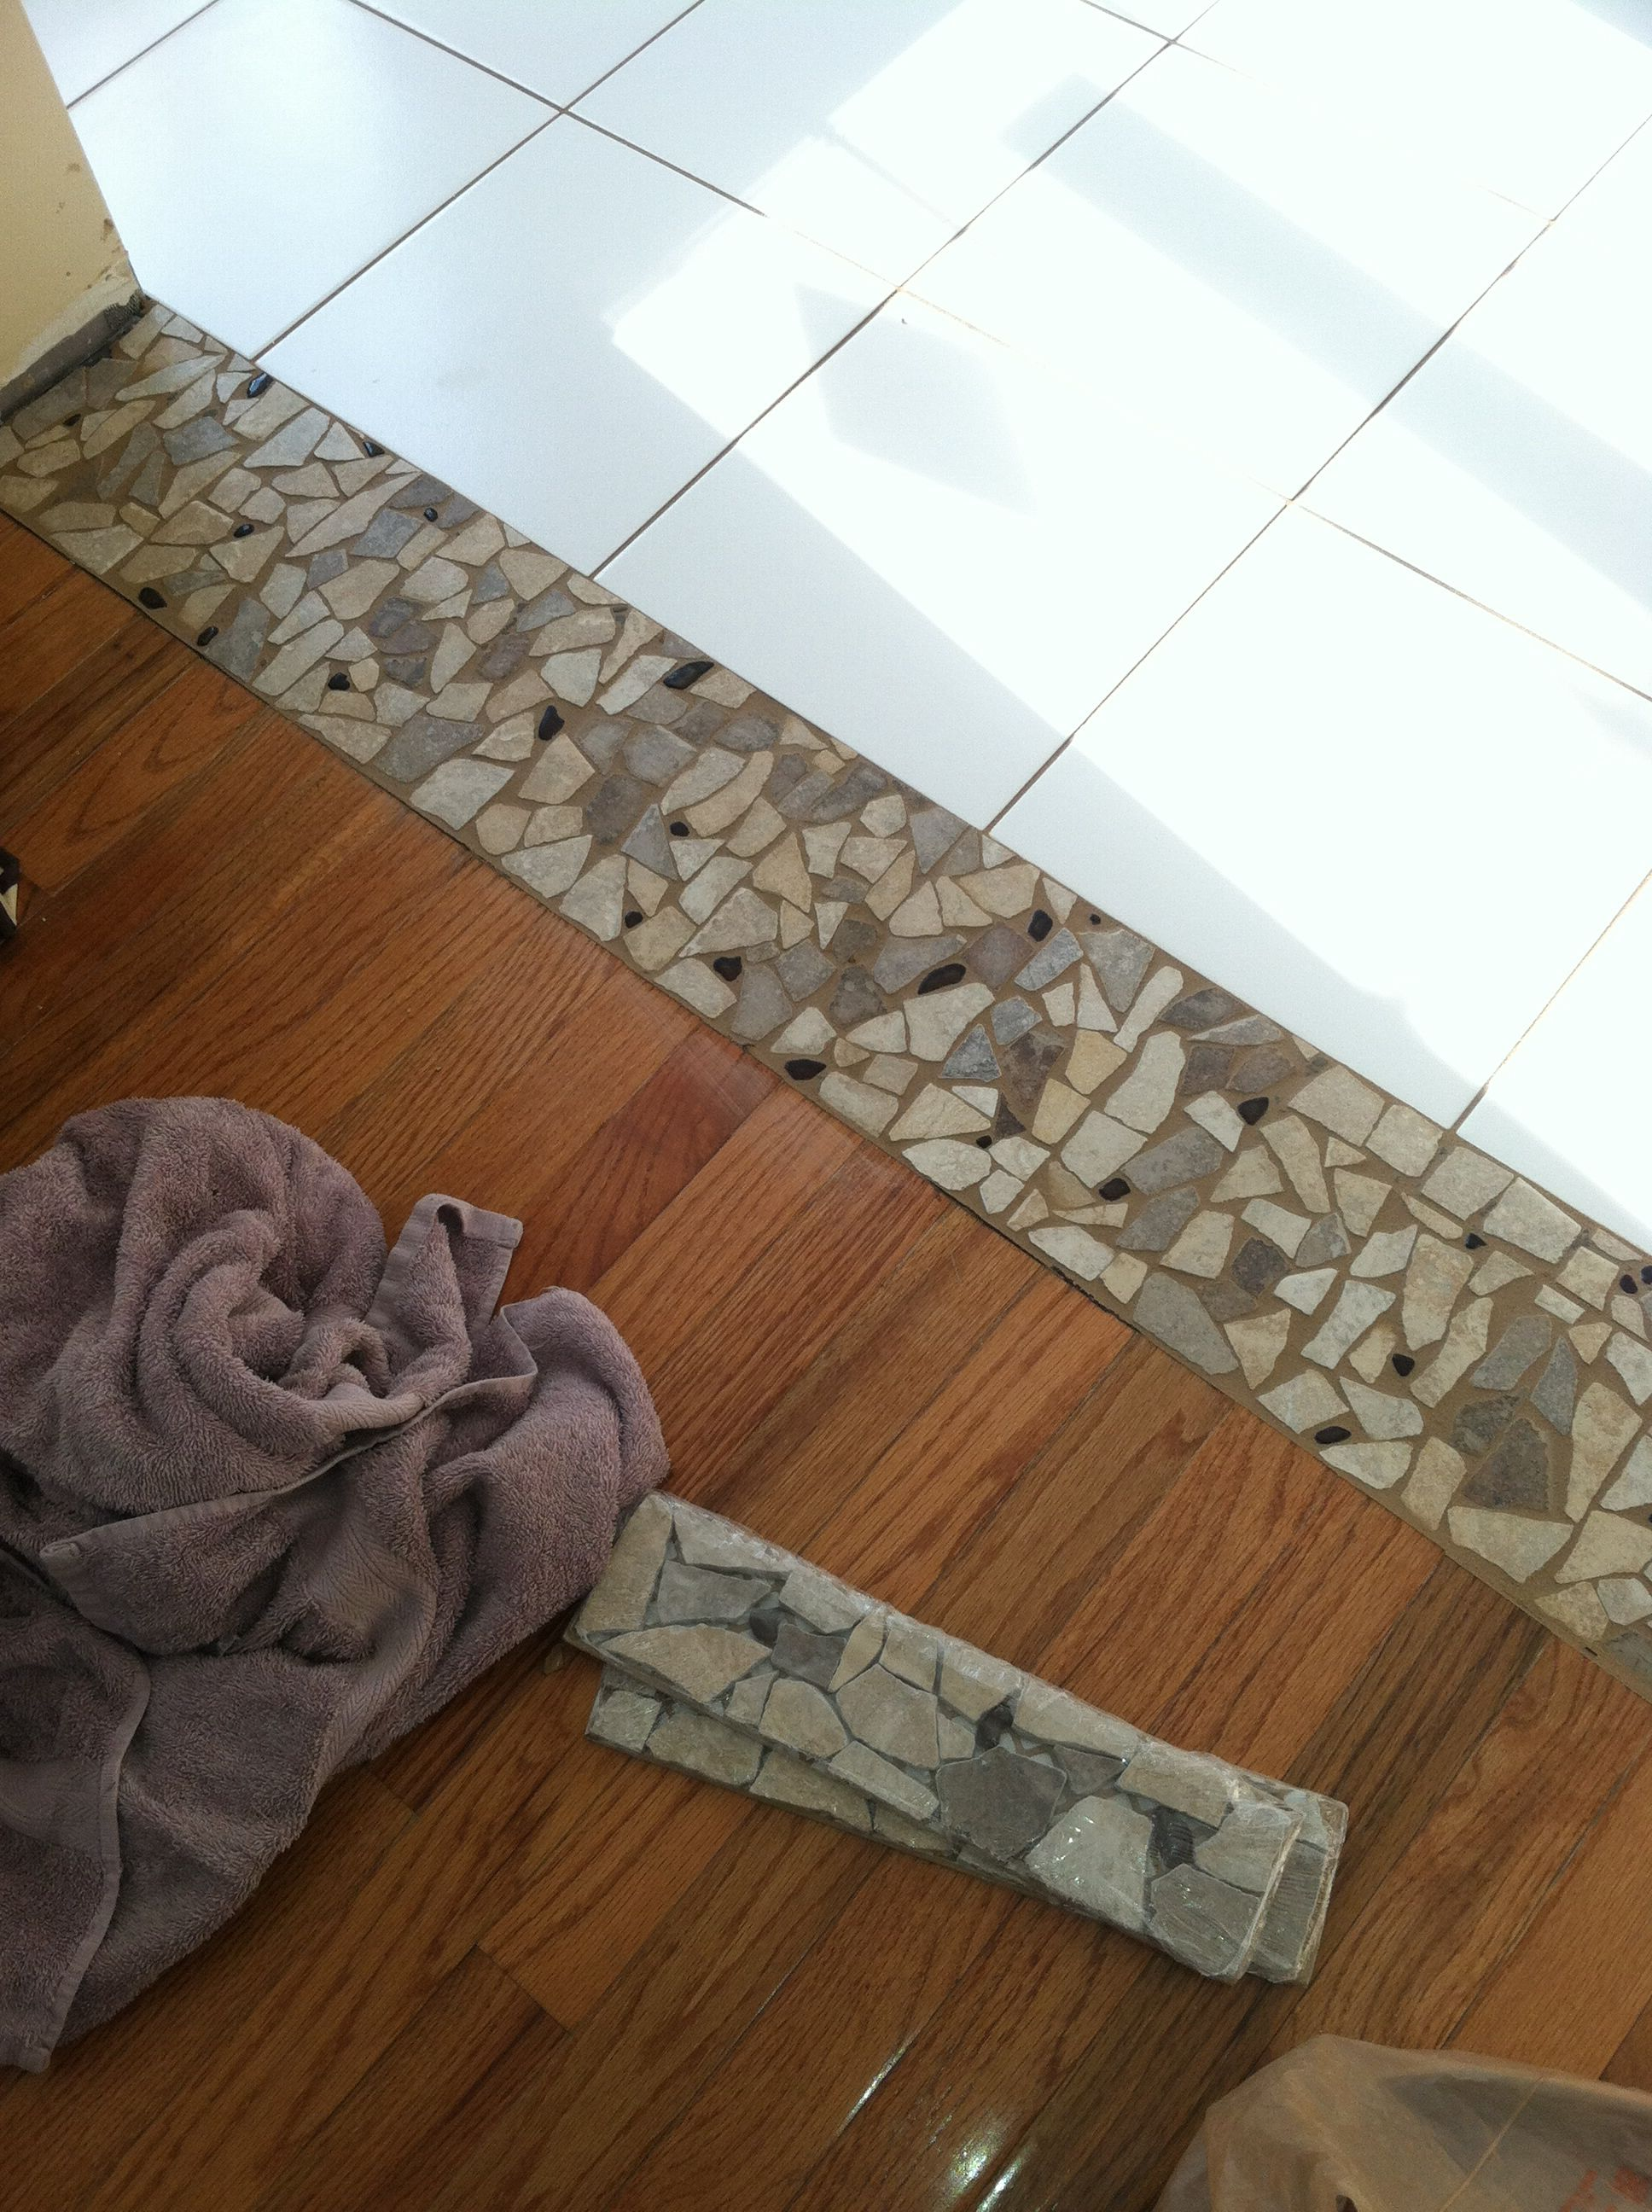 Stone Threshold Between Tile And Wood Kitchen Flooringtile Flooringfloor Patternsflooring